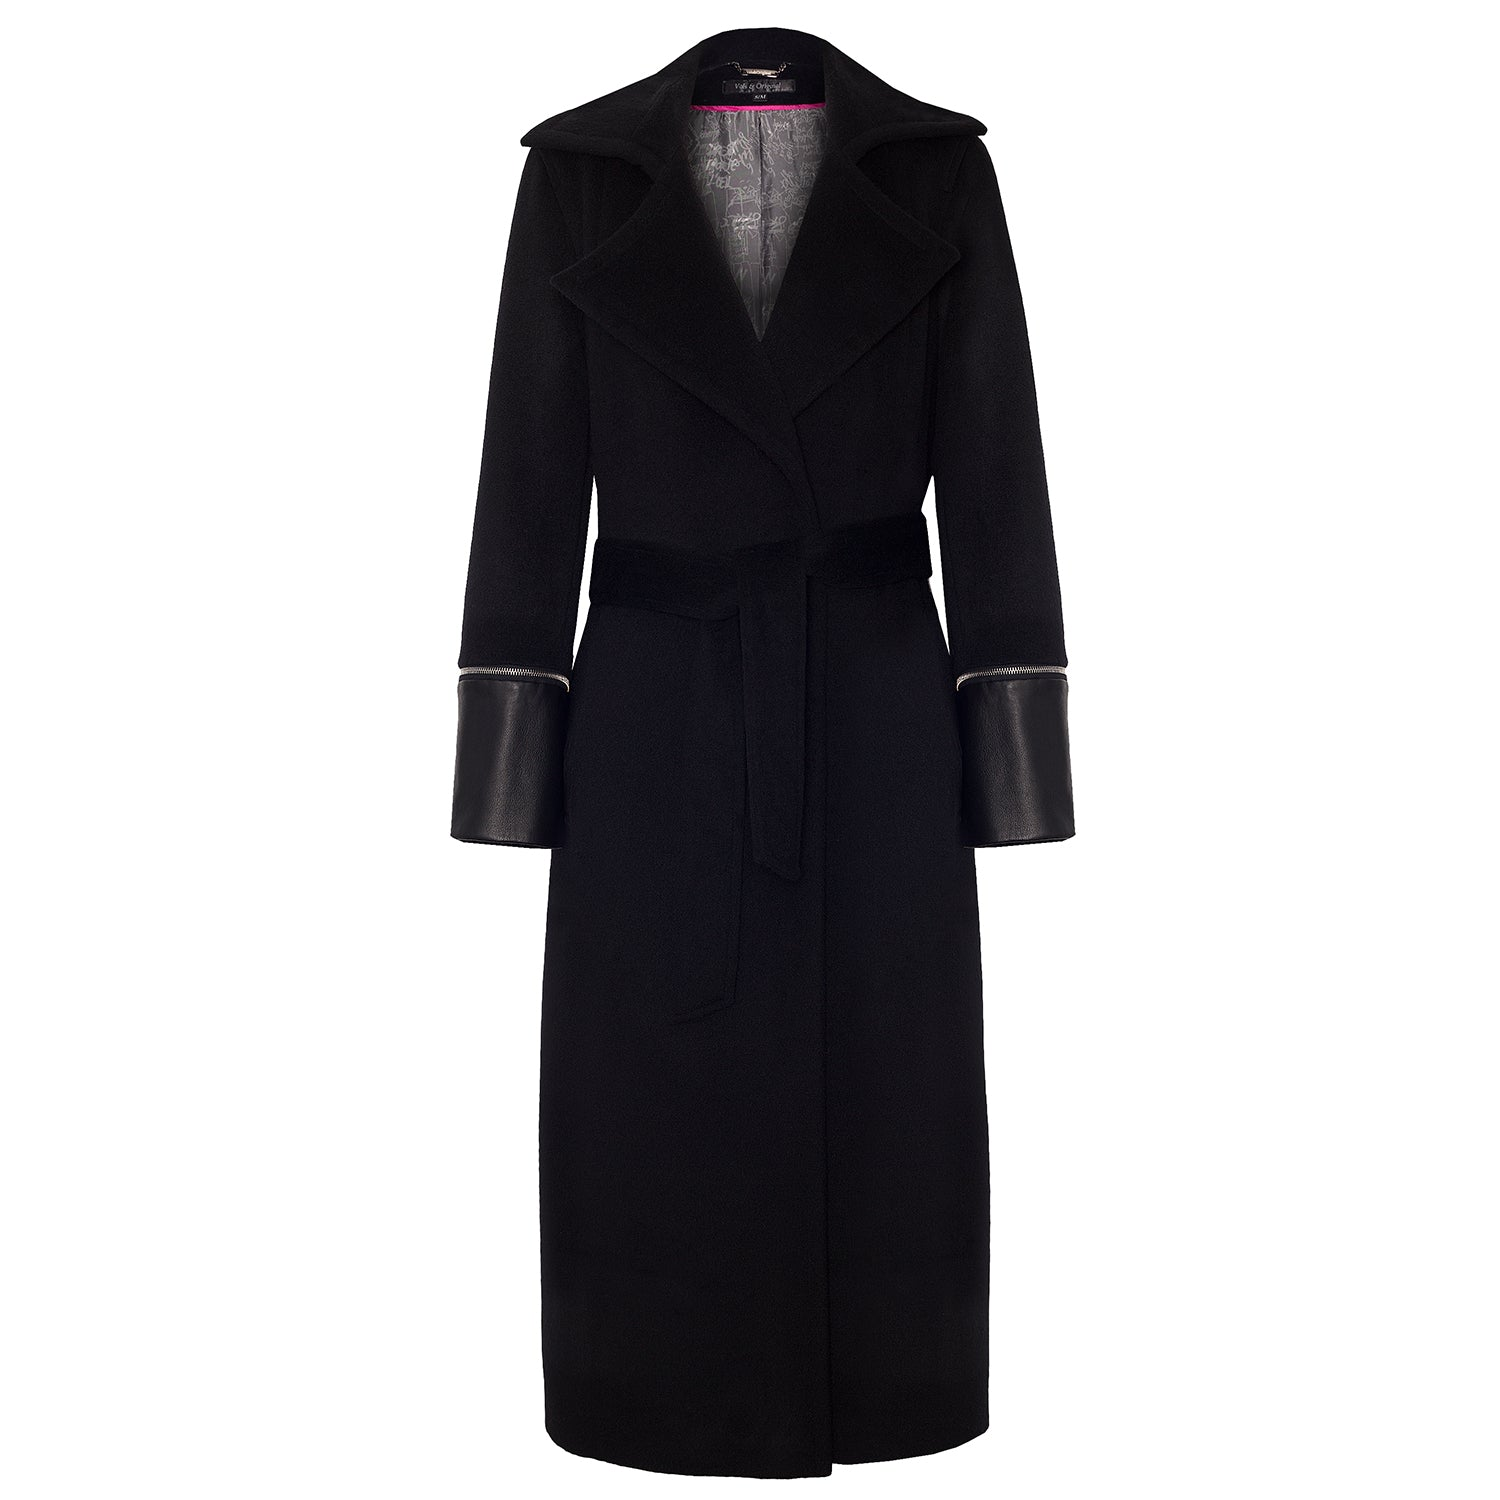 'Amen Noir' Cashmere Trench Coat - VOLS & ORIGINAL